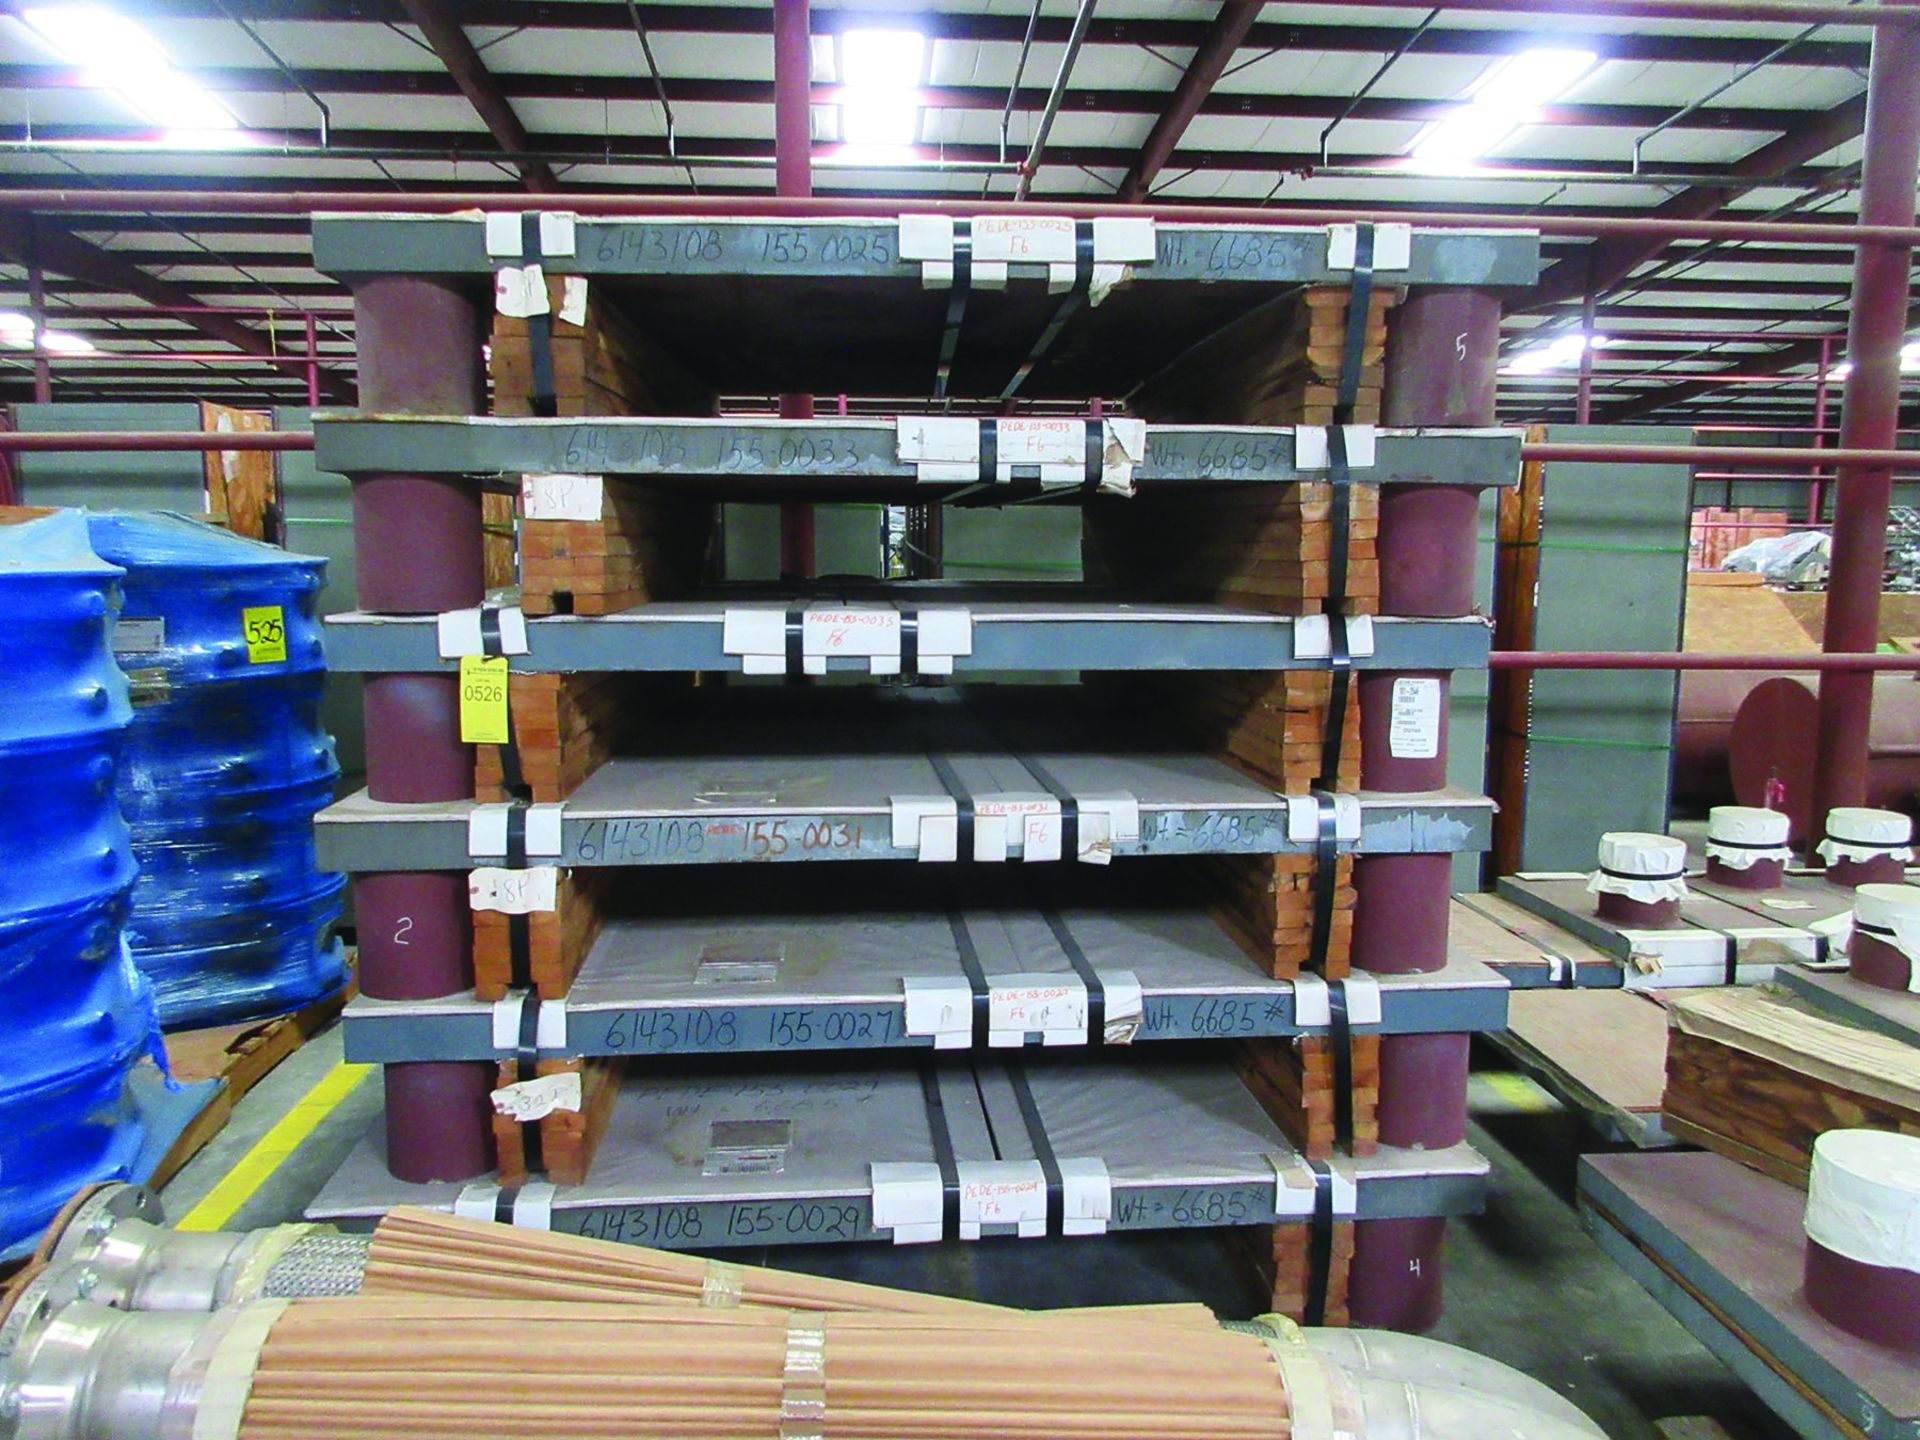 (6) SOLE PLATES, 6,685 LBS. EACH, OTHER ASSORTED SOLE PLATES, 4'' ASSORTED BUNDLE OF PIPE, ANGLE - Image 2 of 14